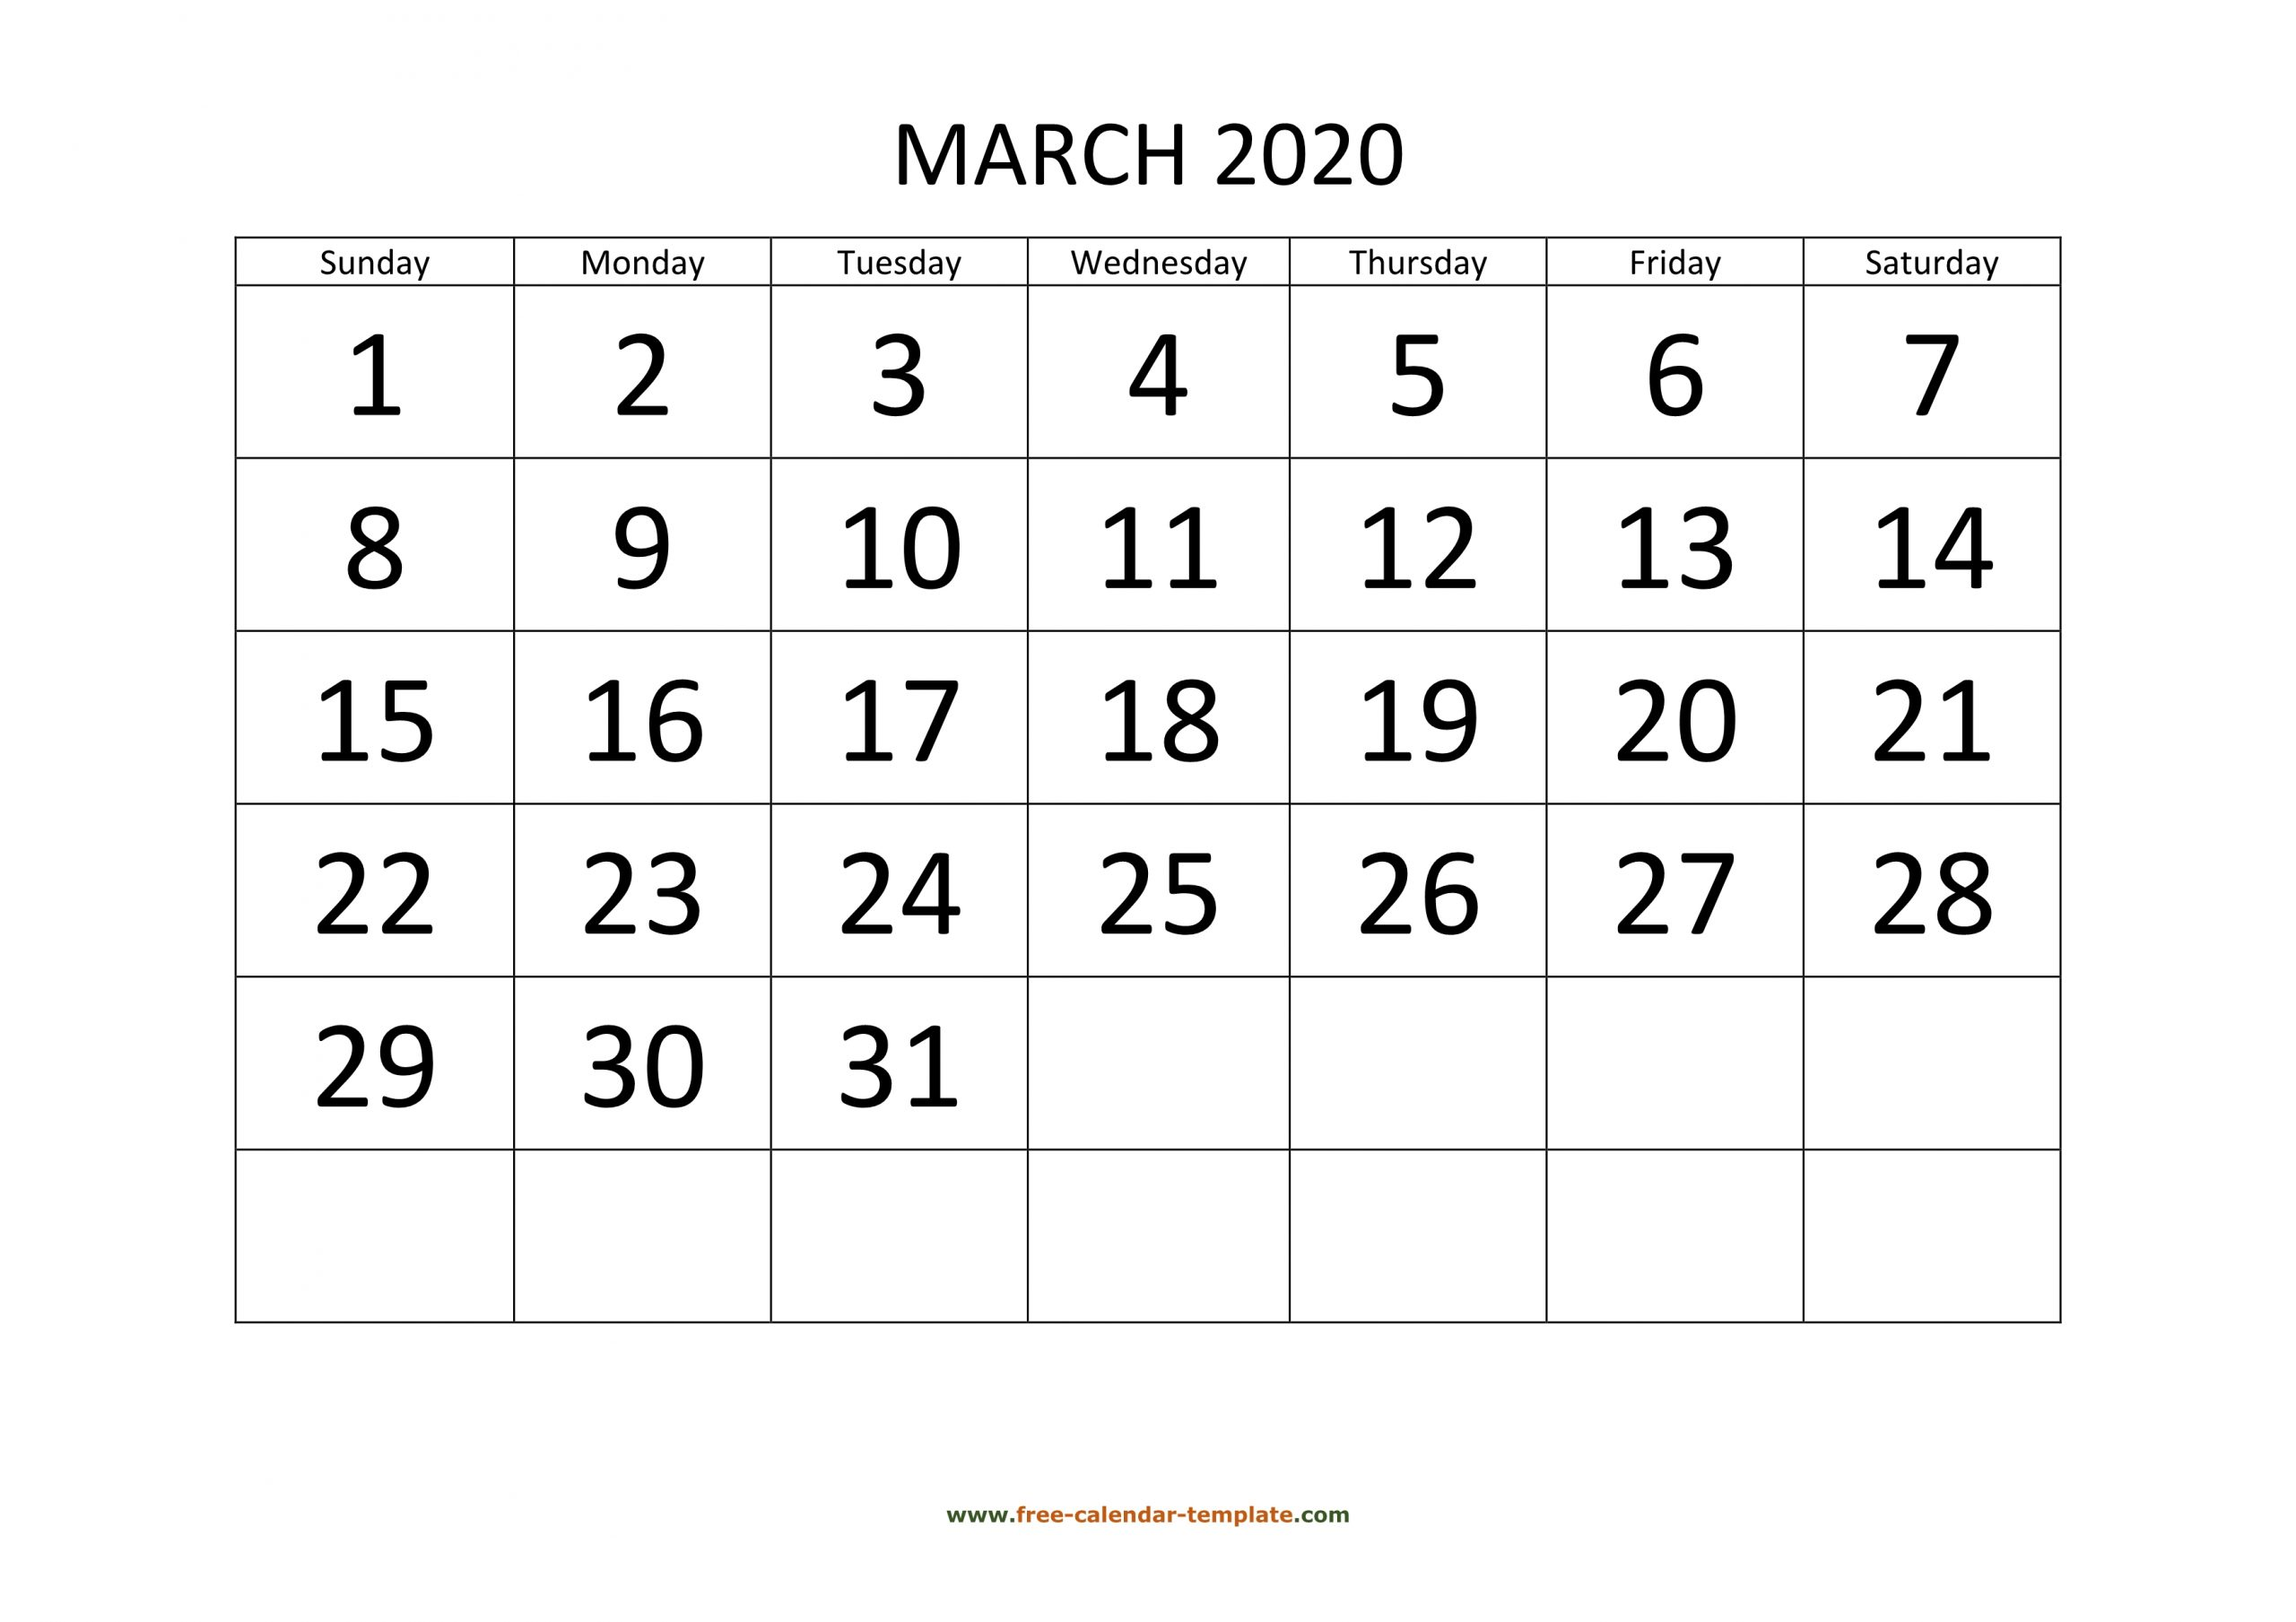 March 2020 Calendar Designed With Large Font (Horizontal